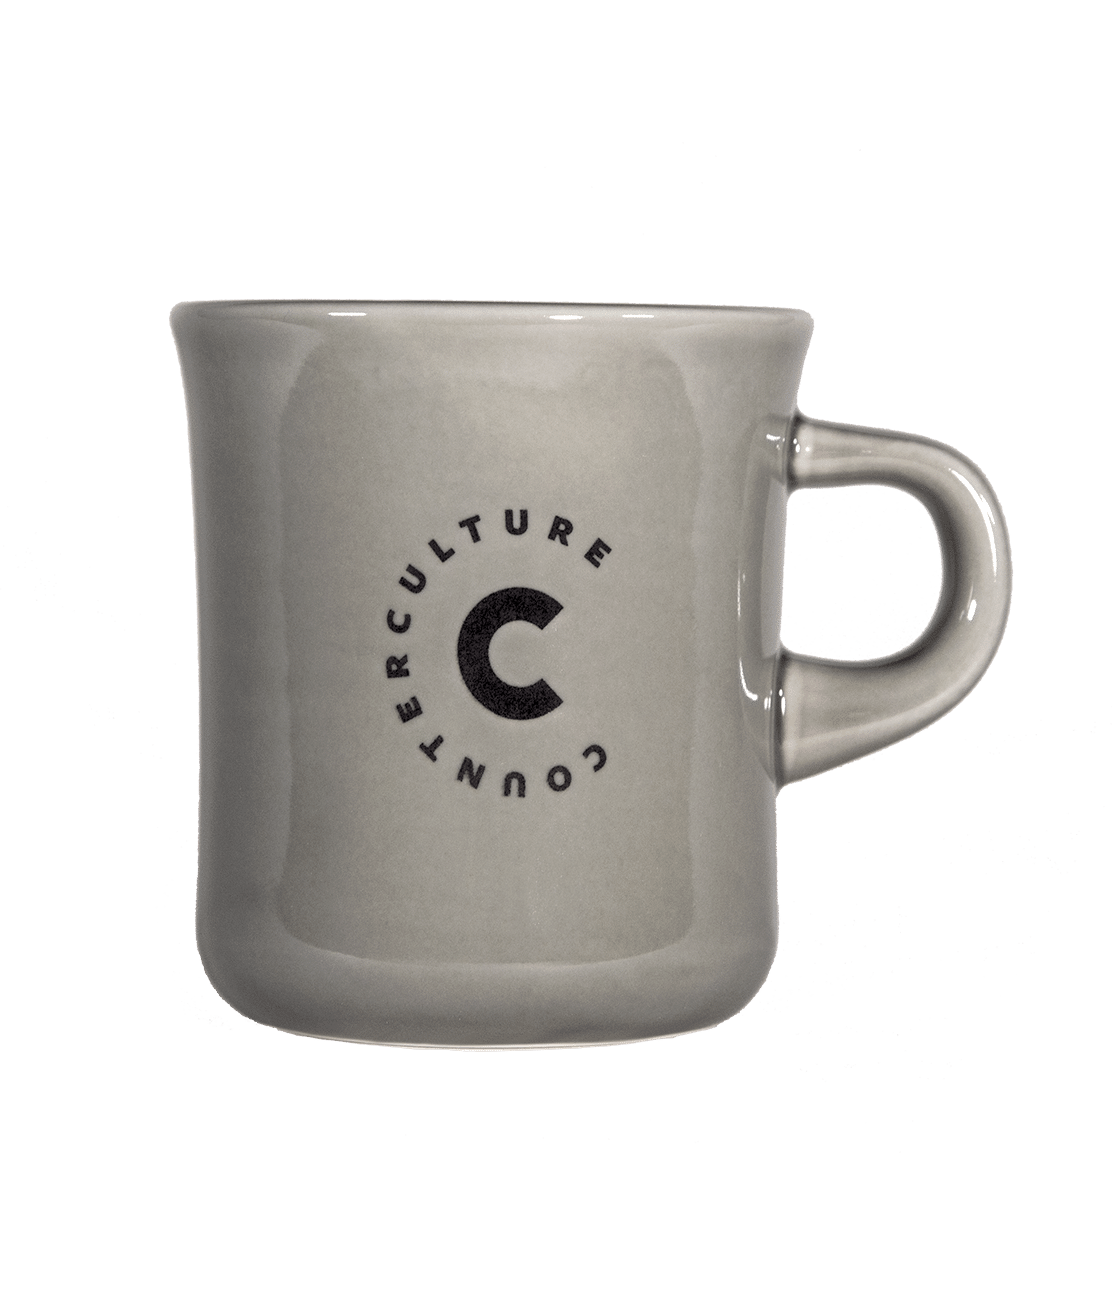 counter culture kinto mug counter culture coffee